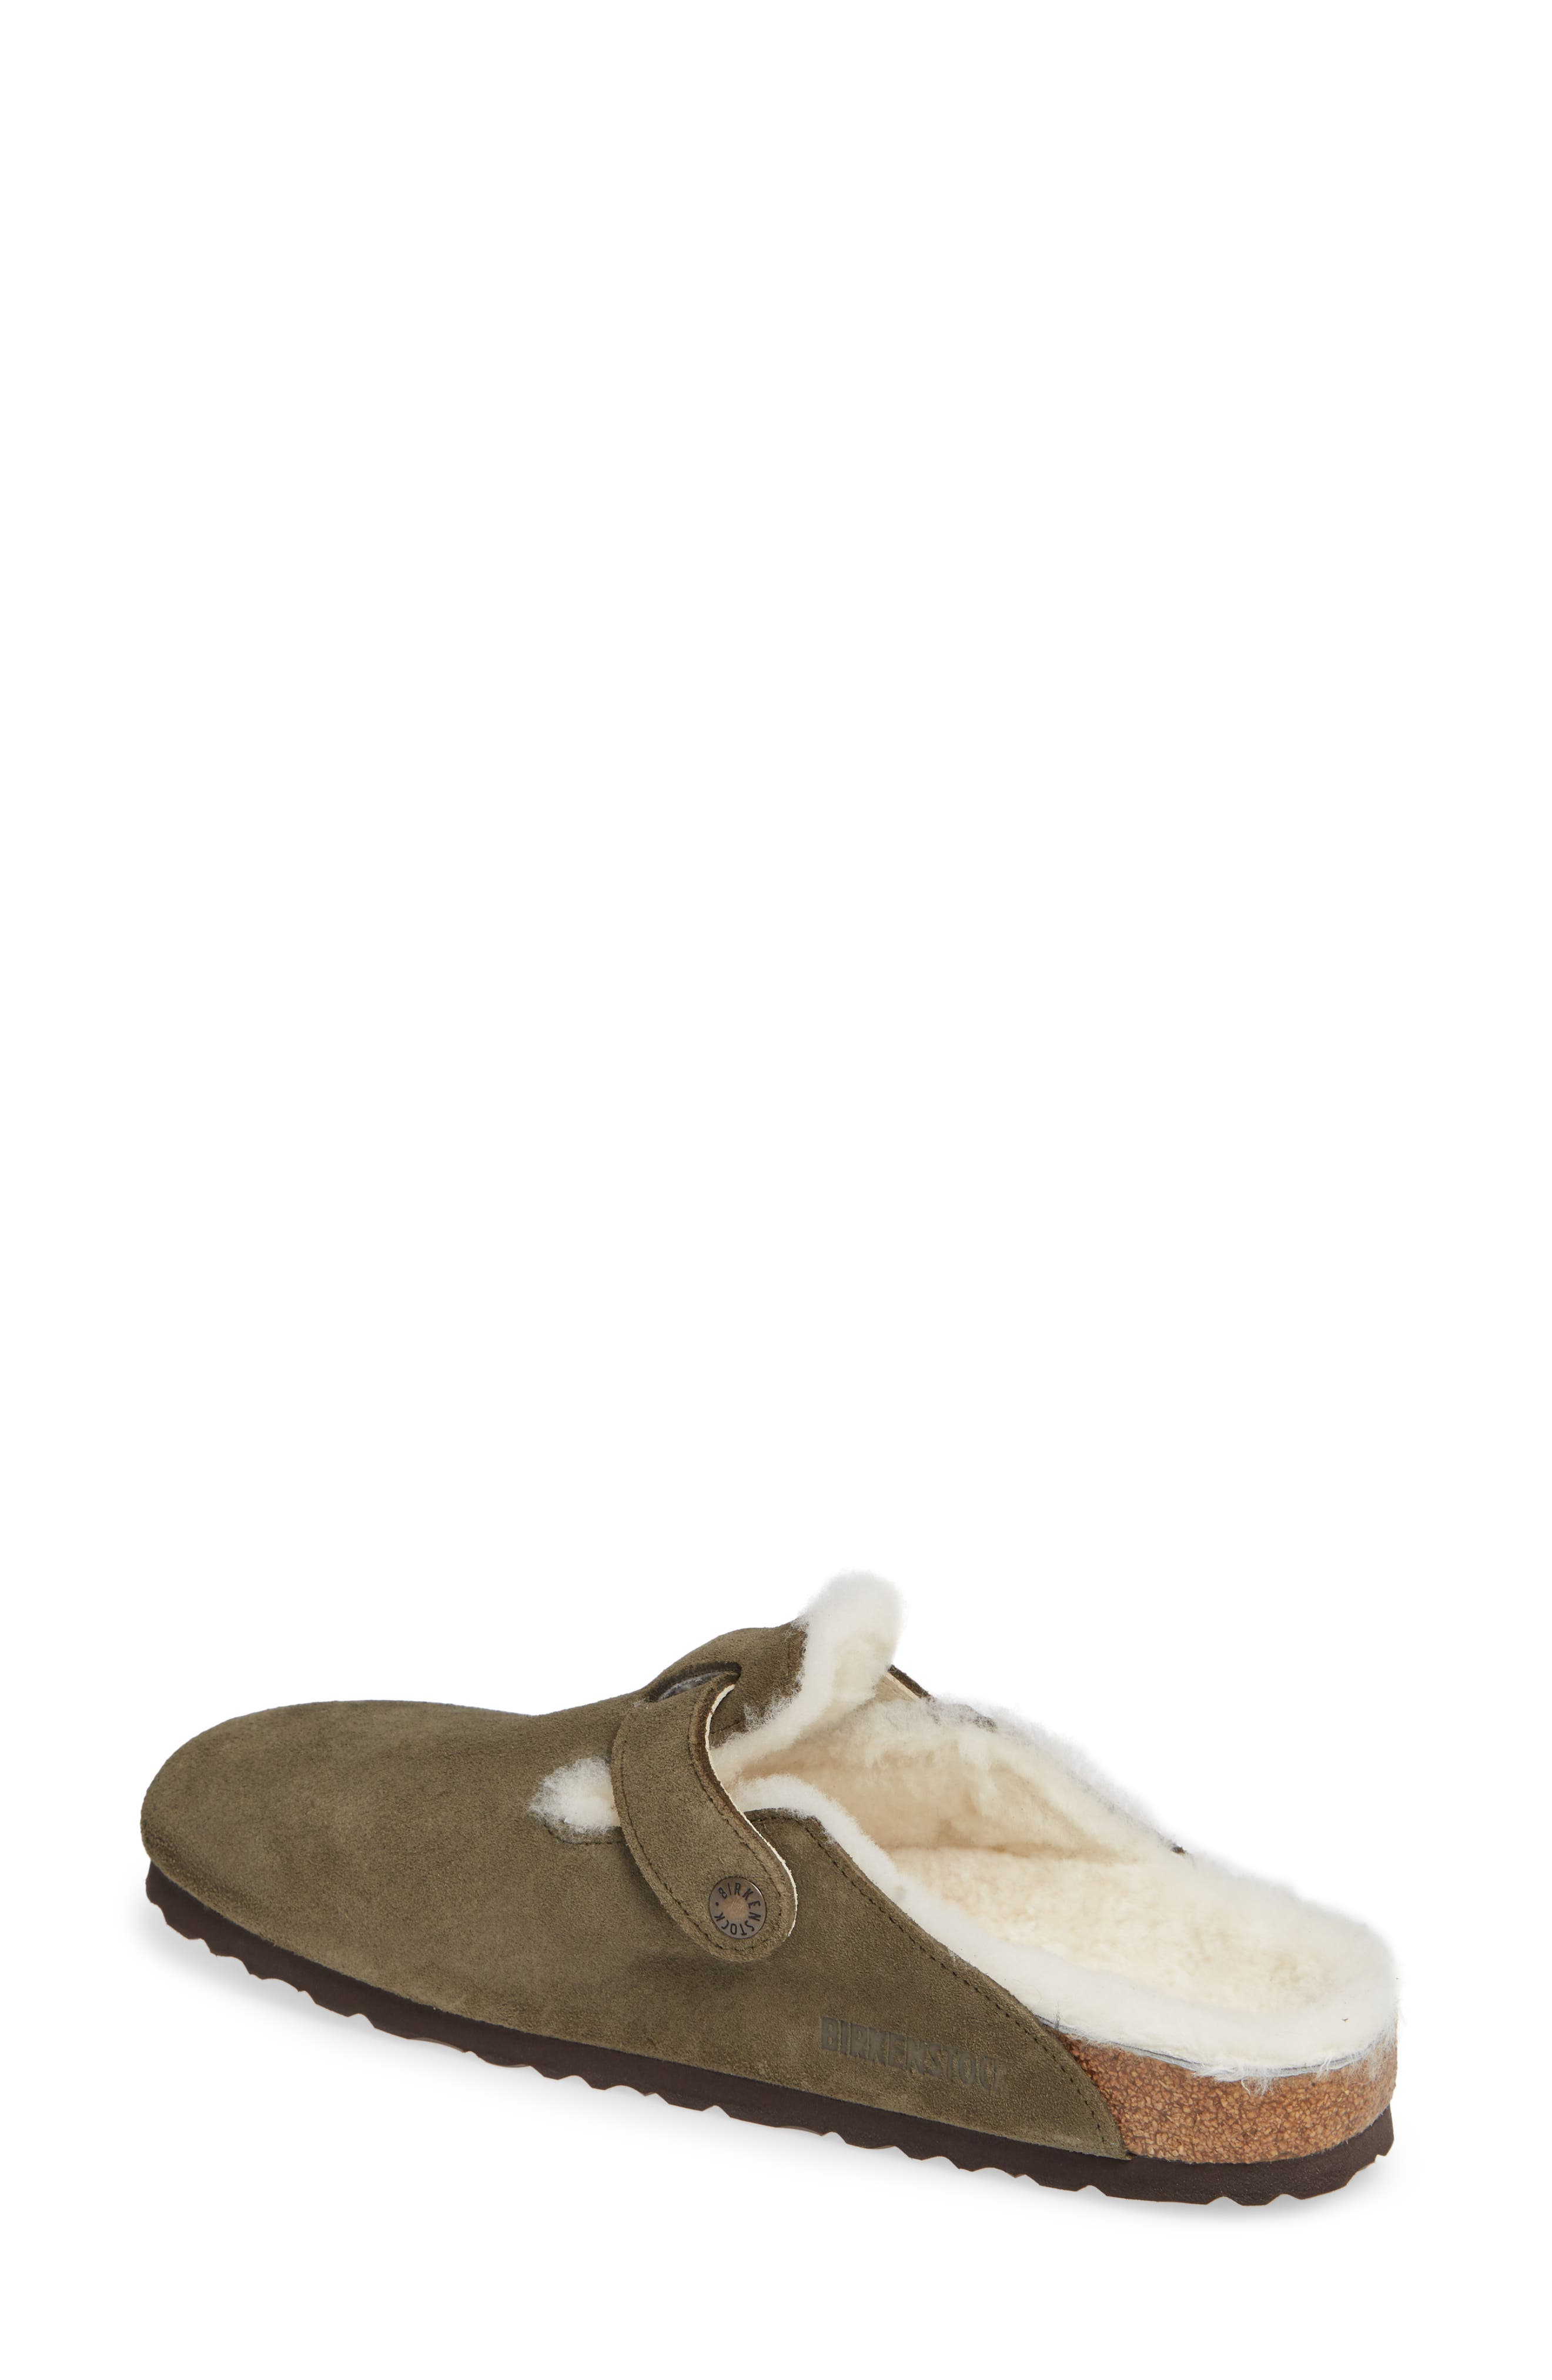 'Boston' Genuine Shearling Lined Clog,                             Alternate thumbnail 2, color,                             FOREST/ NATURAL SUEDE